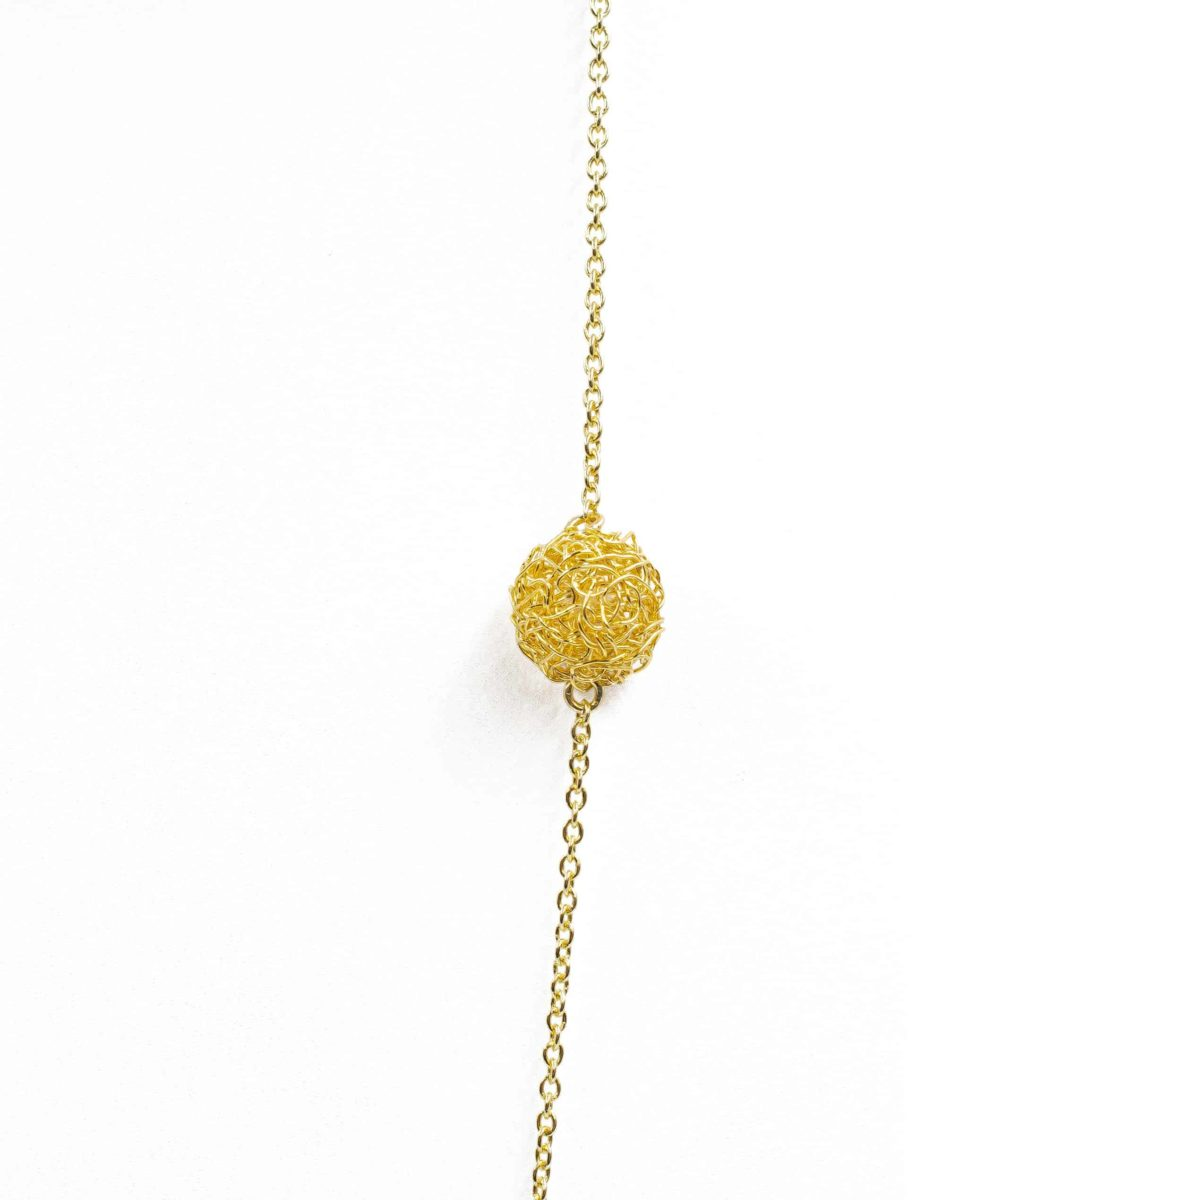 detail of gold sphere in long pendant necklace